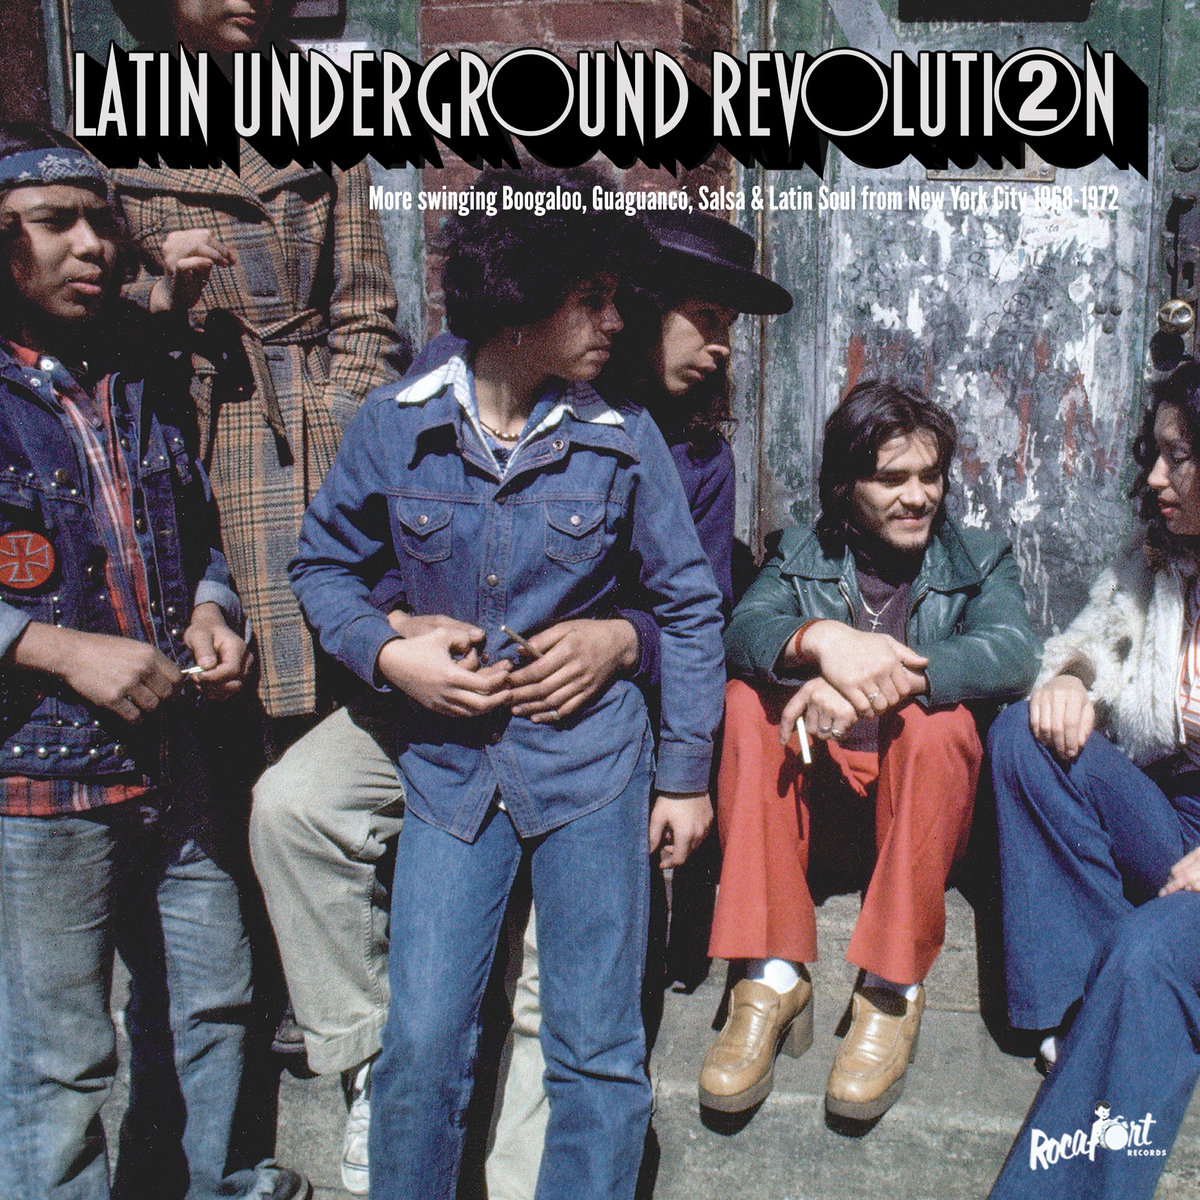 Latin Underground Revolution Vol.2